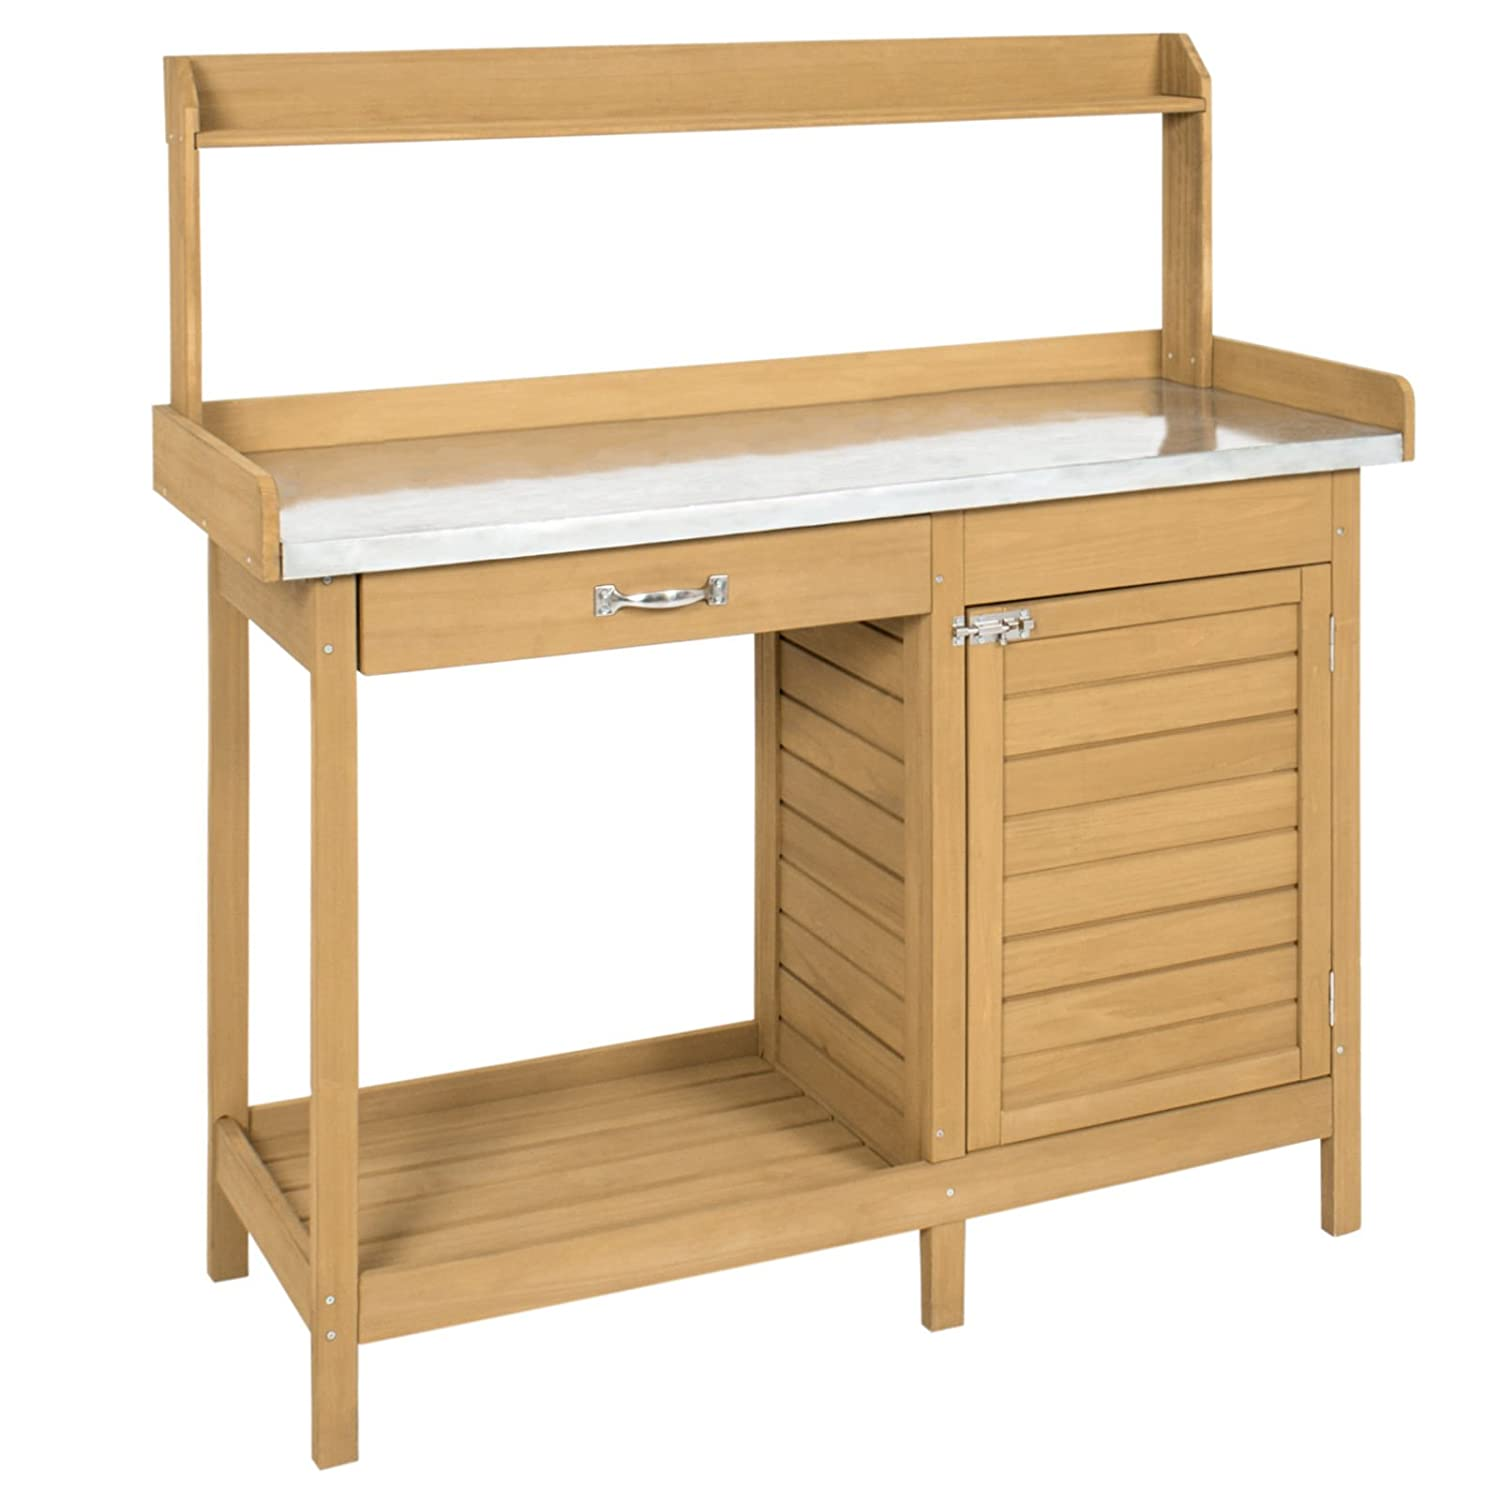 Natural Fir w//Cabinet Giantex Potting Bench Table for Outside Natural Wood Garden Plant Lawn Patio Table Storage Shelf Moisture Free Metal Tabletop Outdoor Workstation Flower Pot Bench